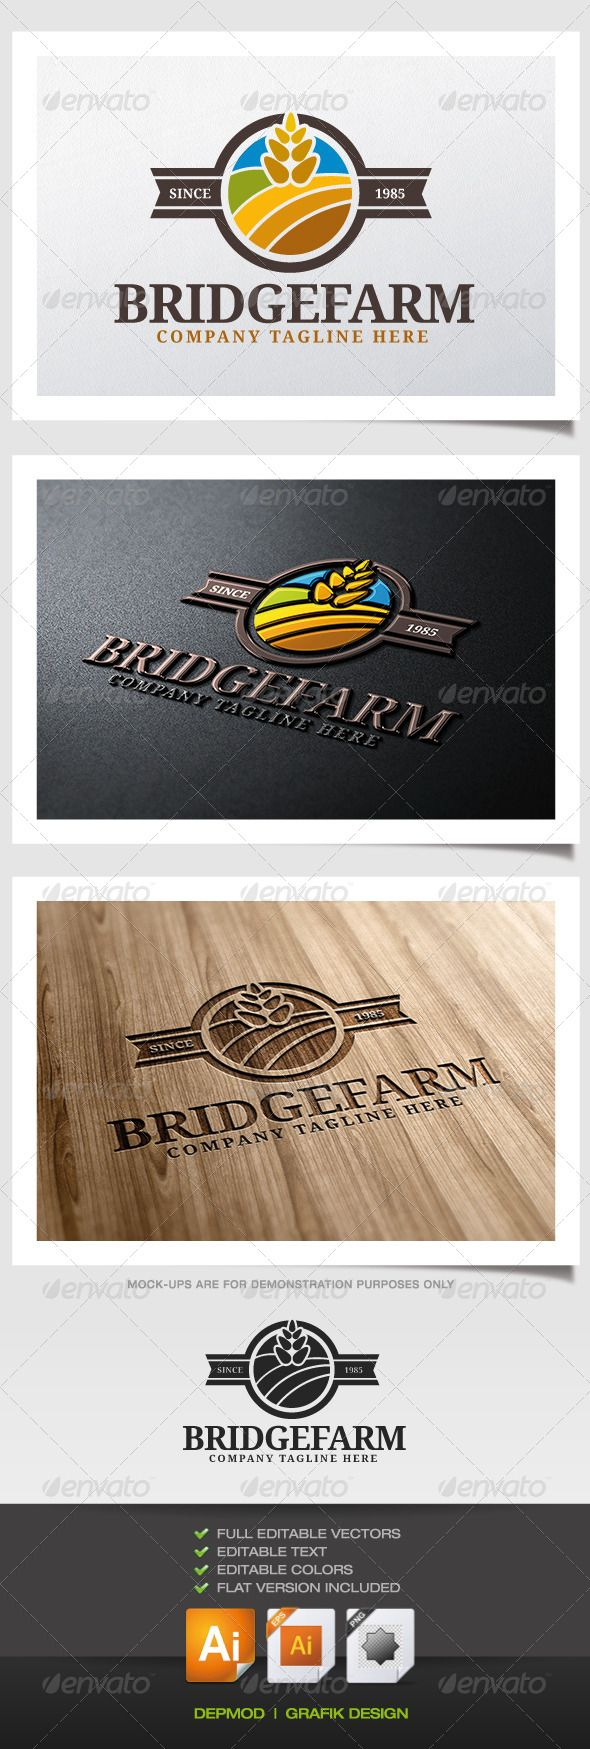 Agri cultures project logo duckdog design - Bridge Farm Logo Graphicriver Logo Of Fields Of Wheat And A Blue Sky Can